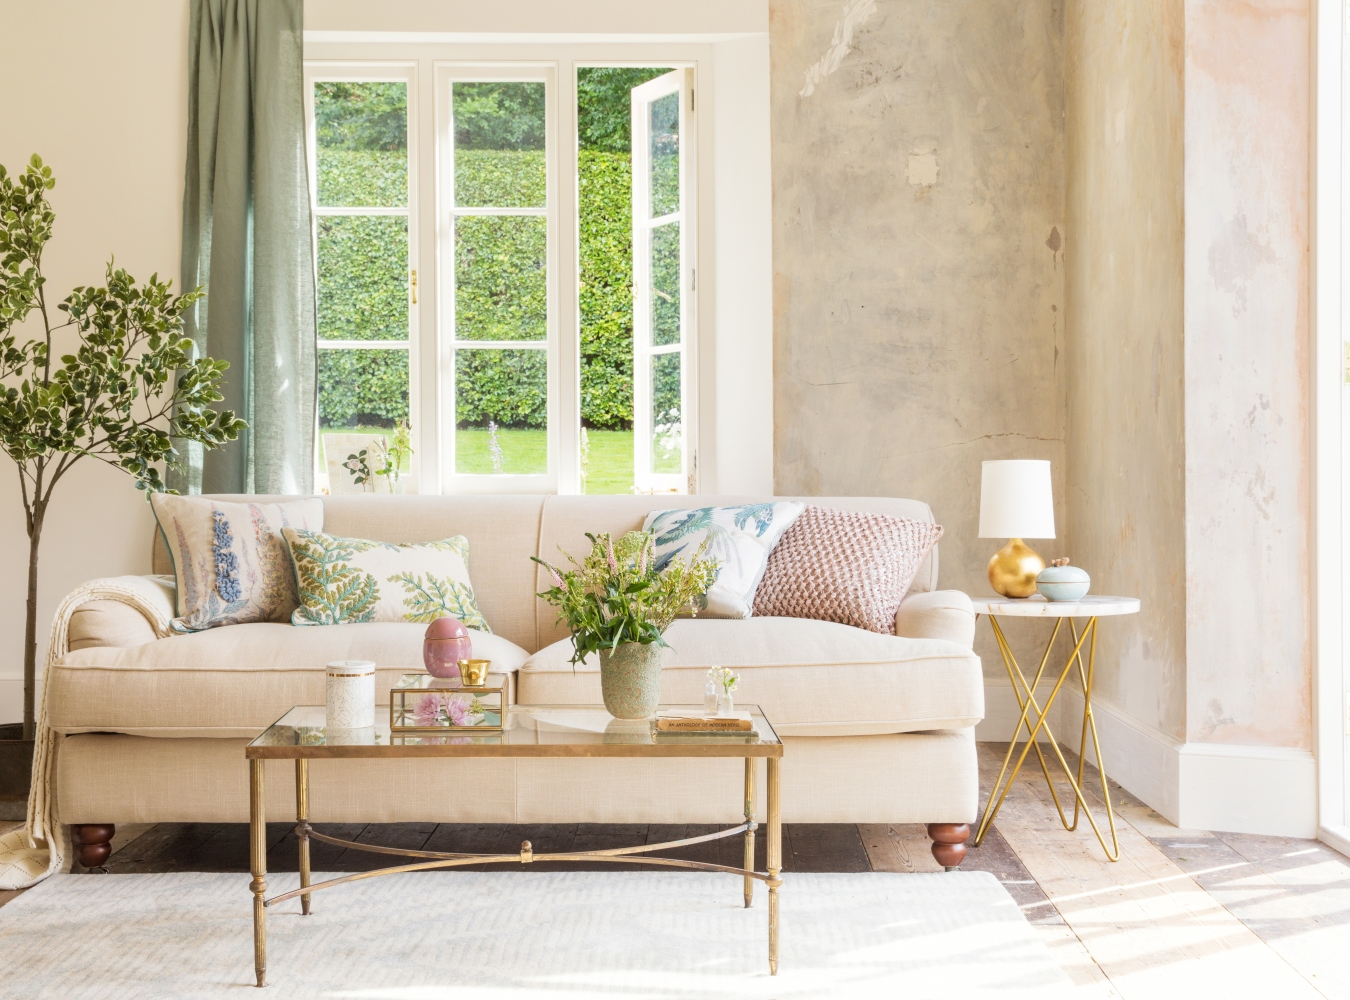 make living room spacious using simple and smart tricks how to get started in interior design Starting a home renovation can be daunting, but with a few insider tips and tricks  youu0027ll be on your way to making your ...